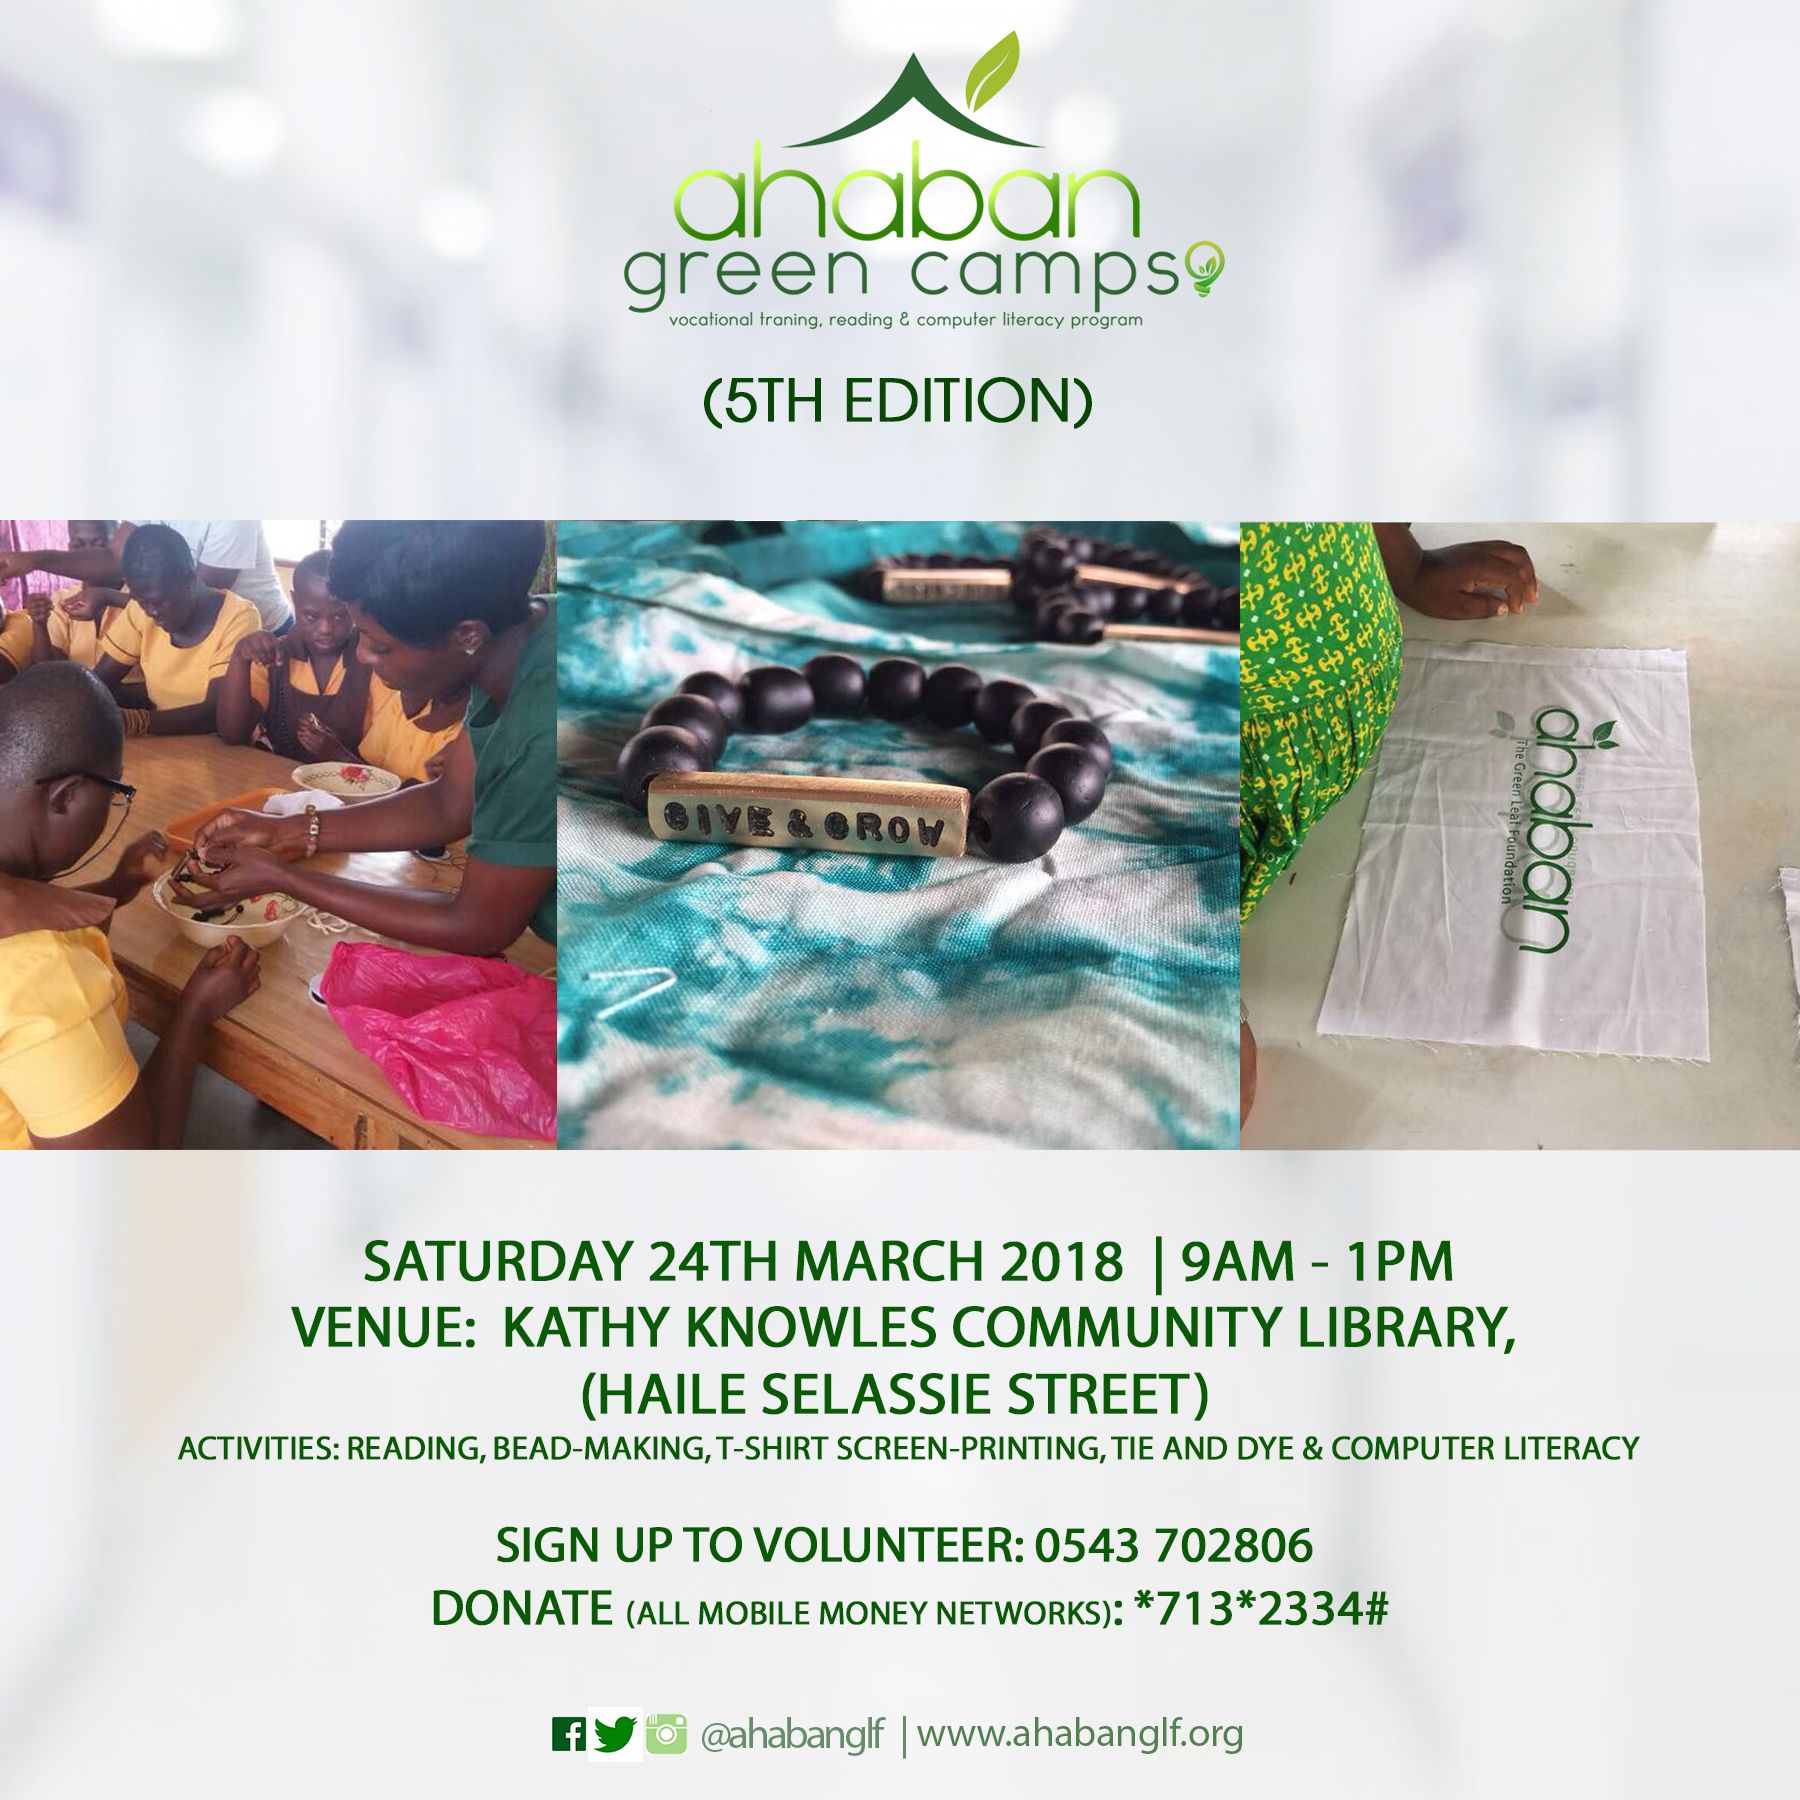 AHABAN green camp flyer